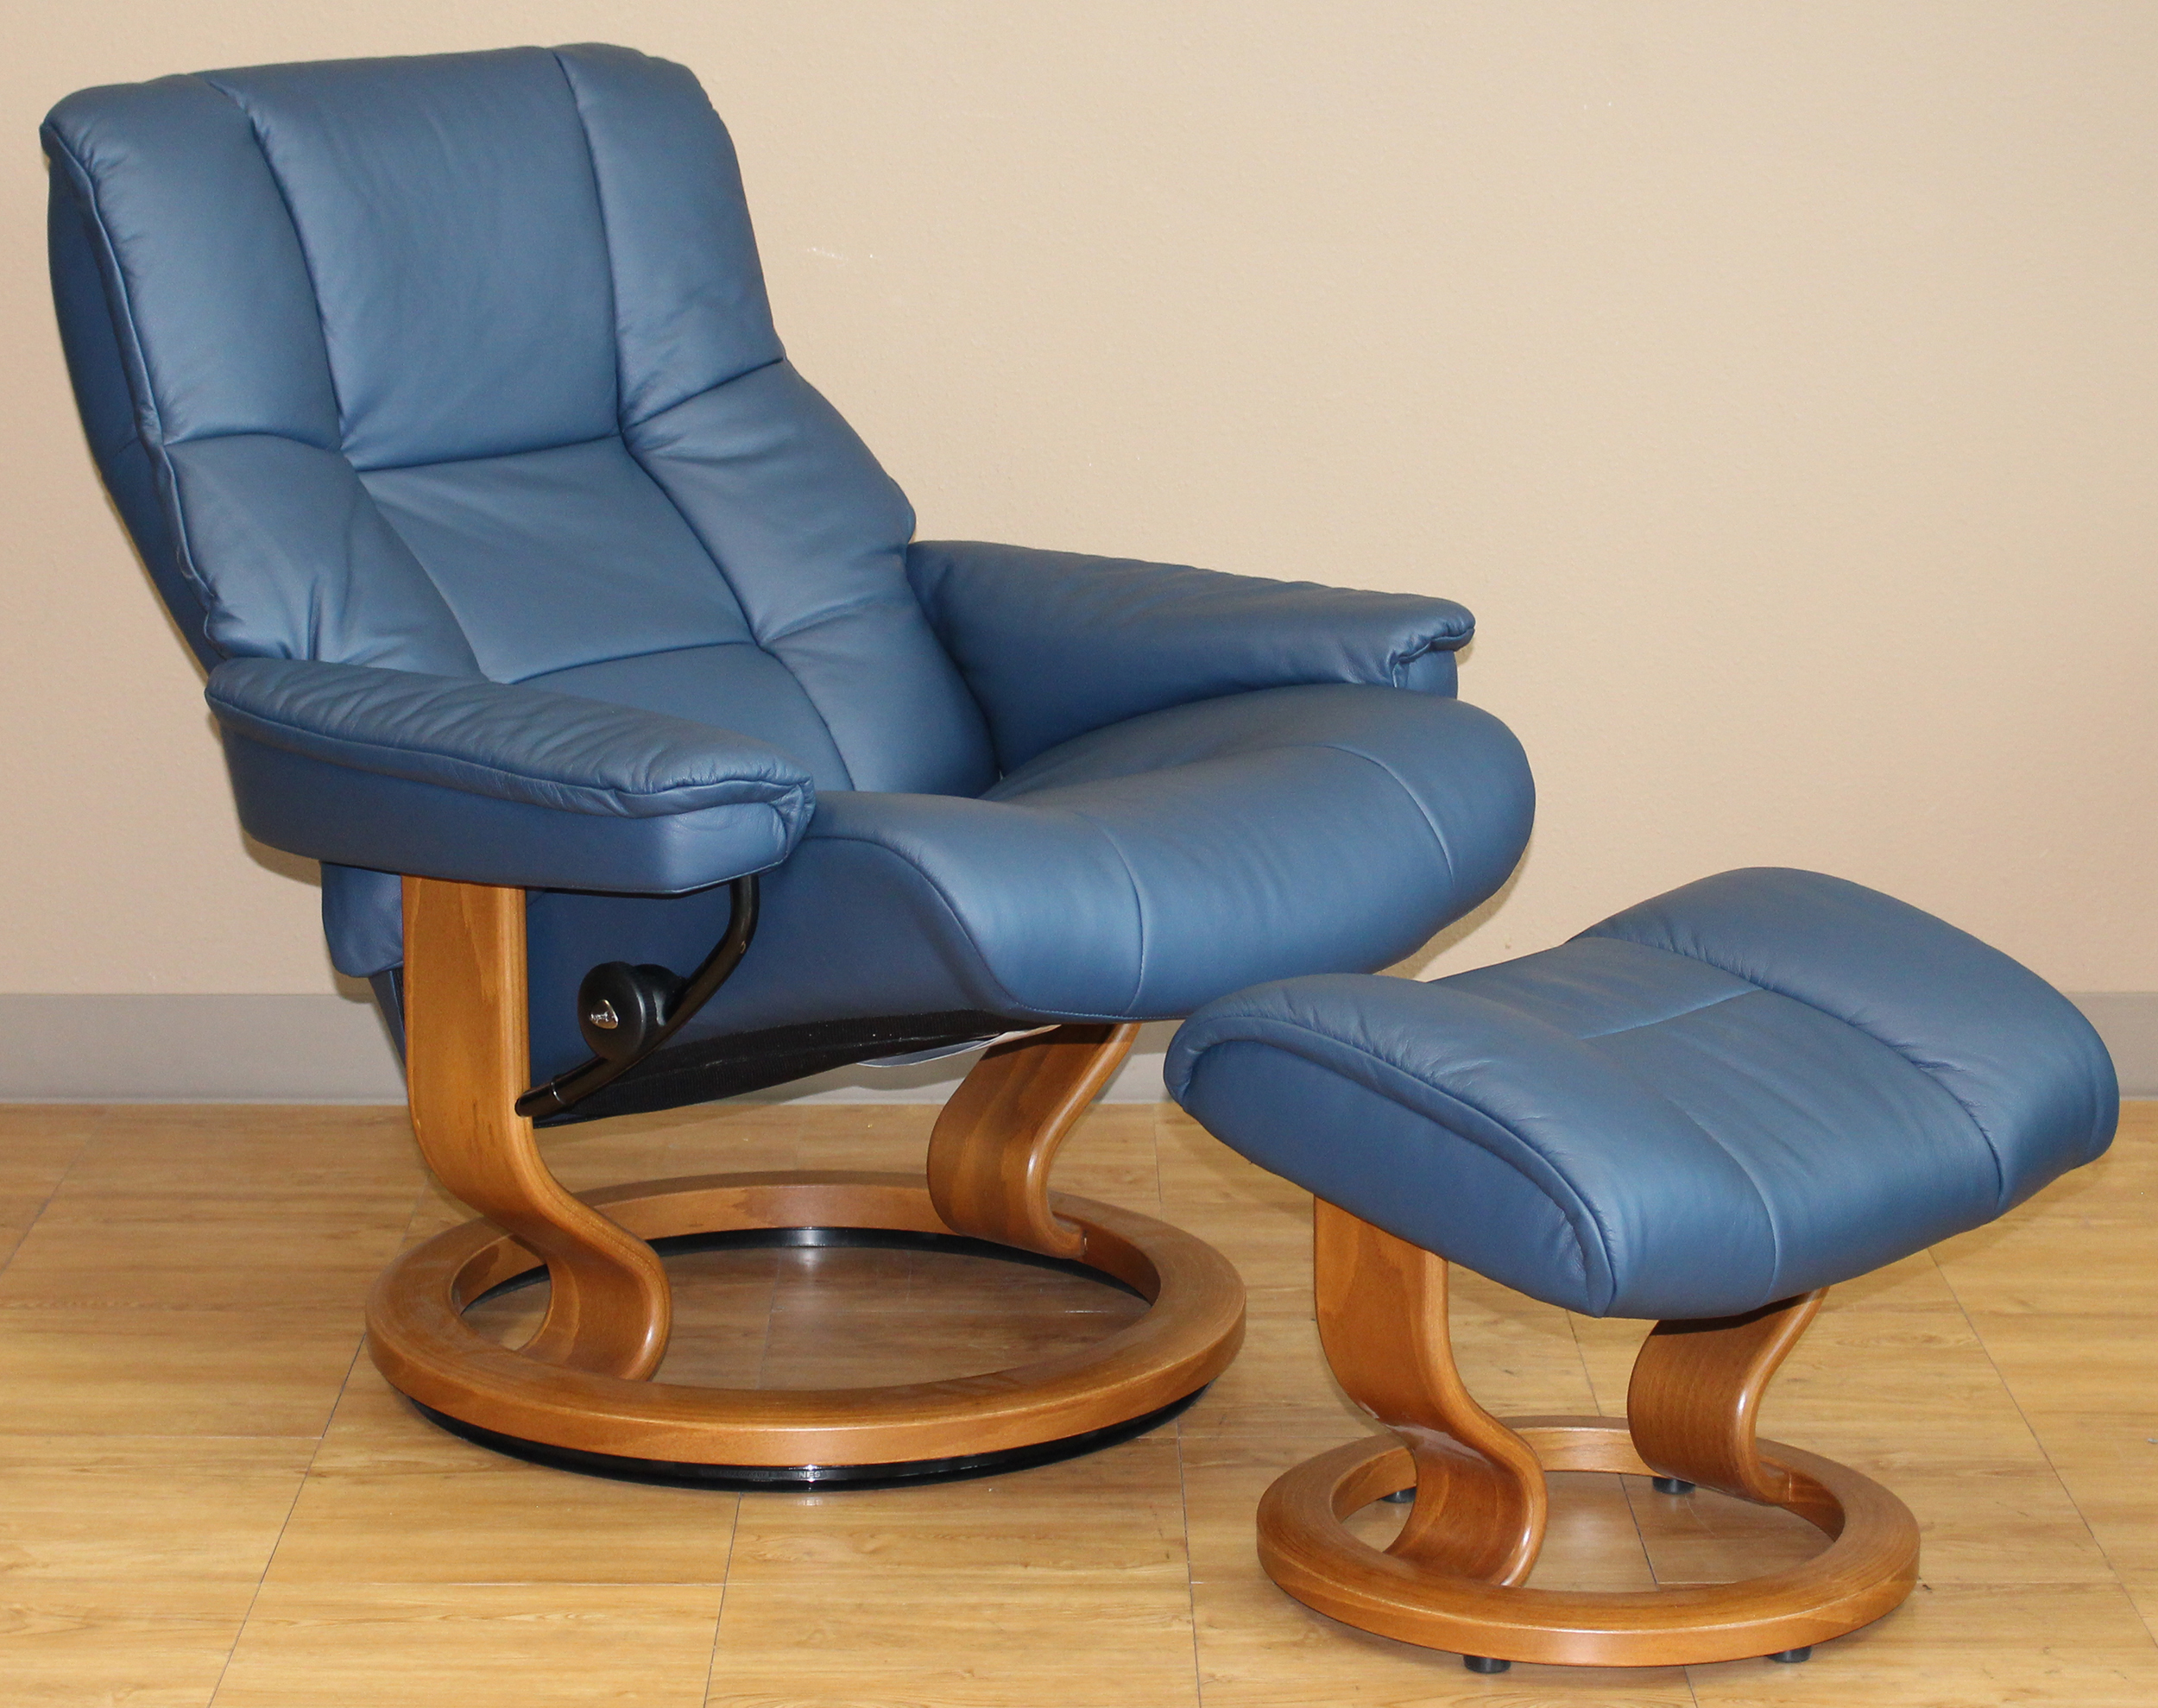 Stressless Kensington Large Mayfair Paloma Oxford Blue Leather Recliner Chair by Ekornes : large leather recliner chairs - islam-shia.org